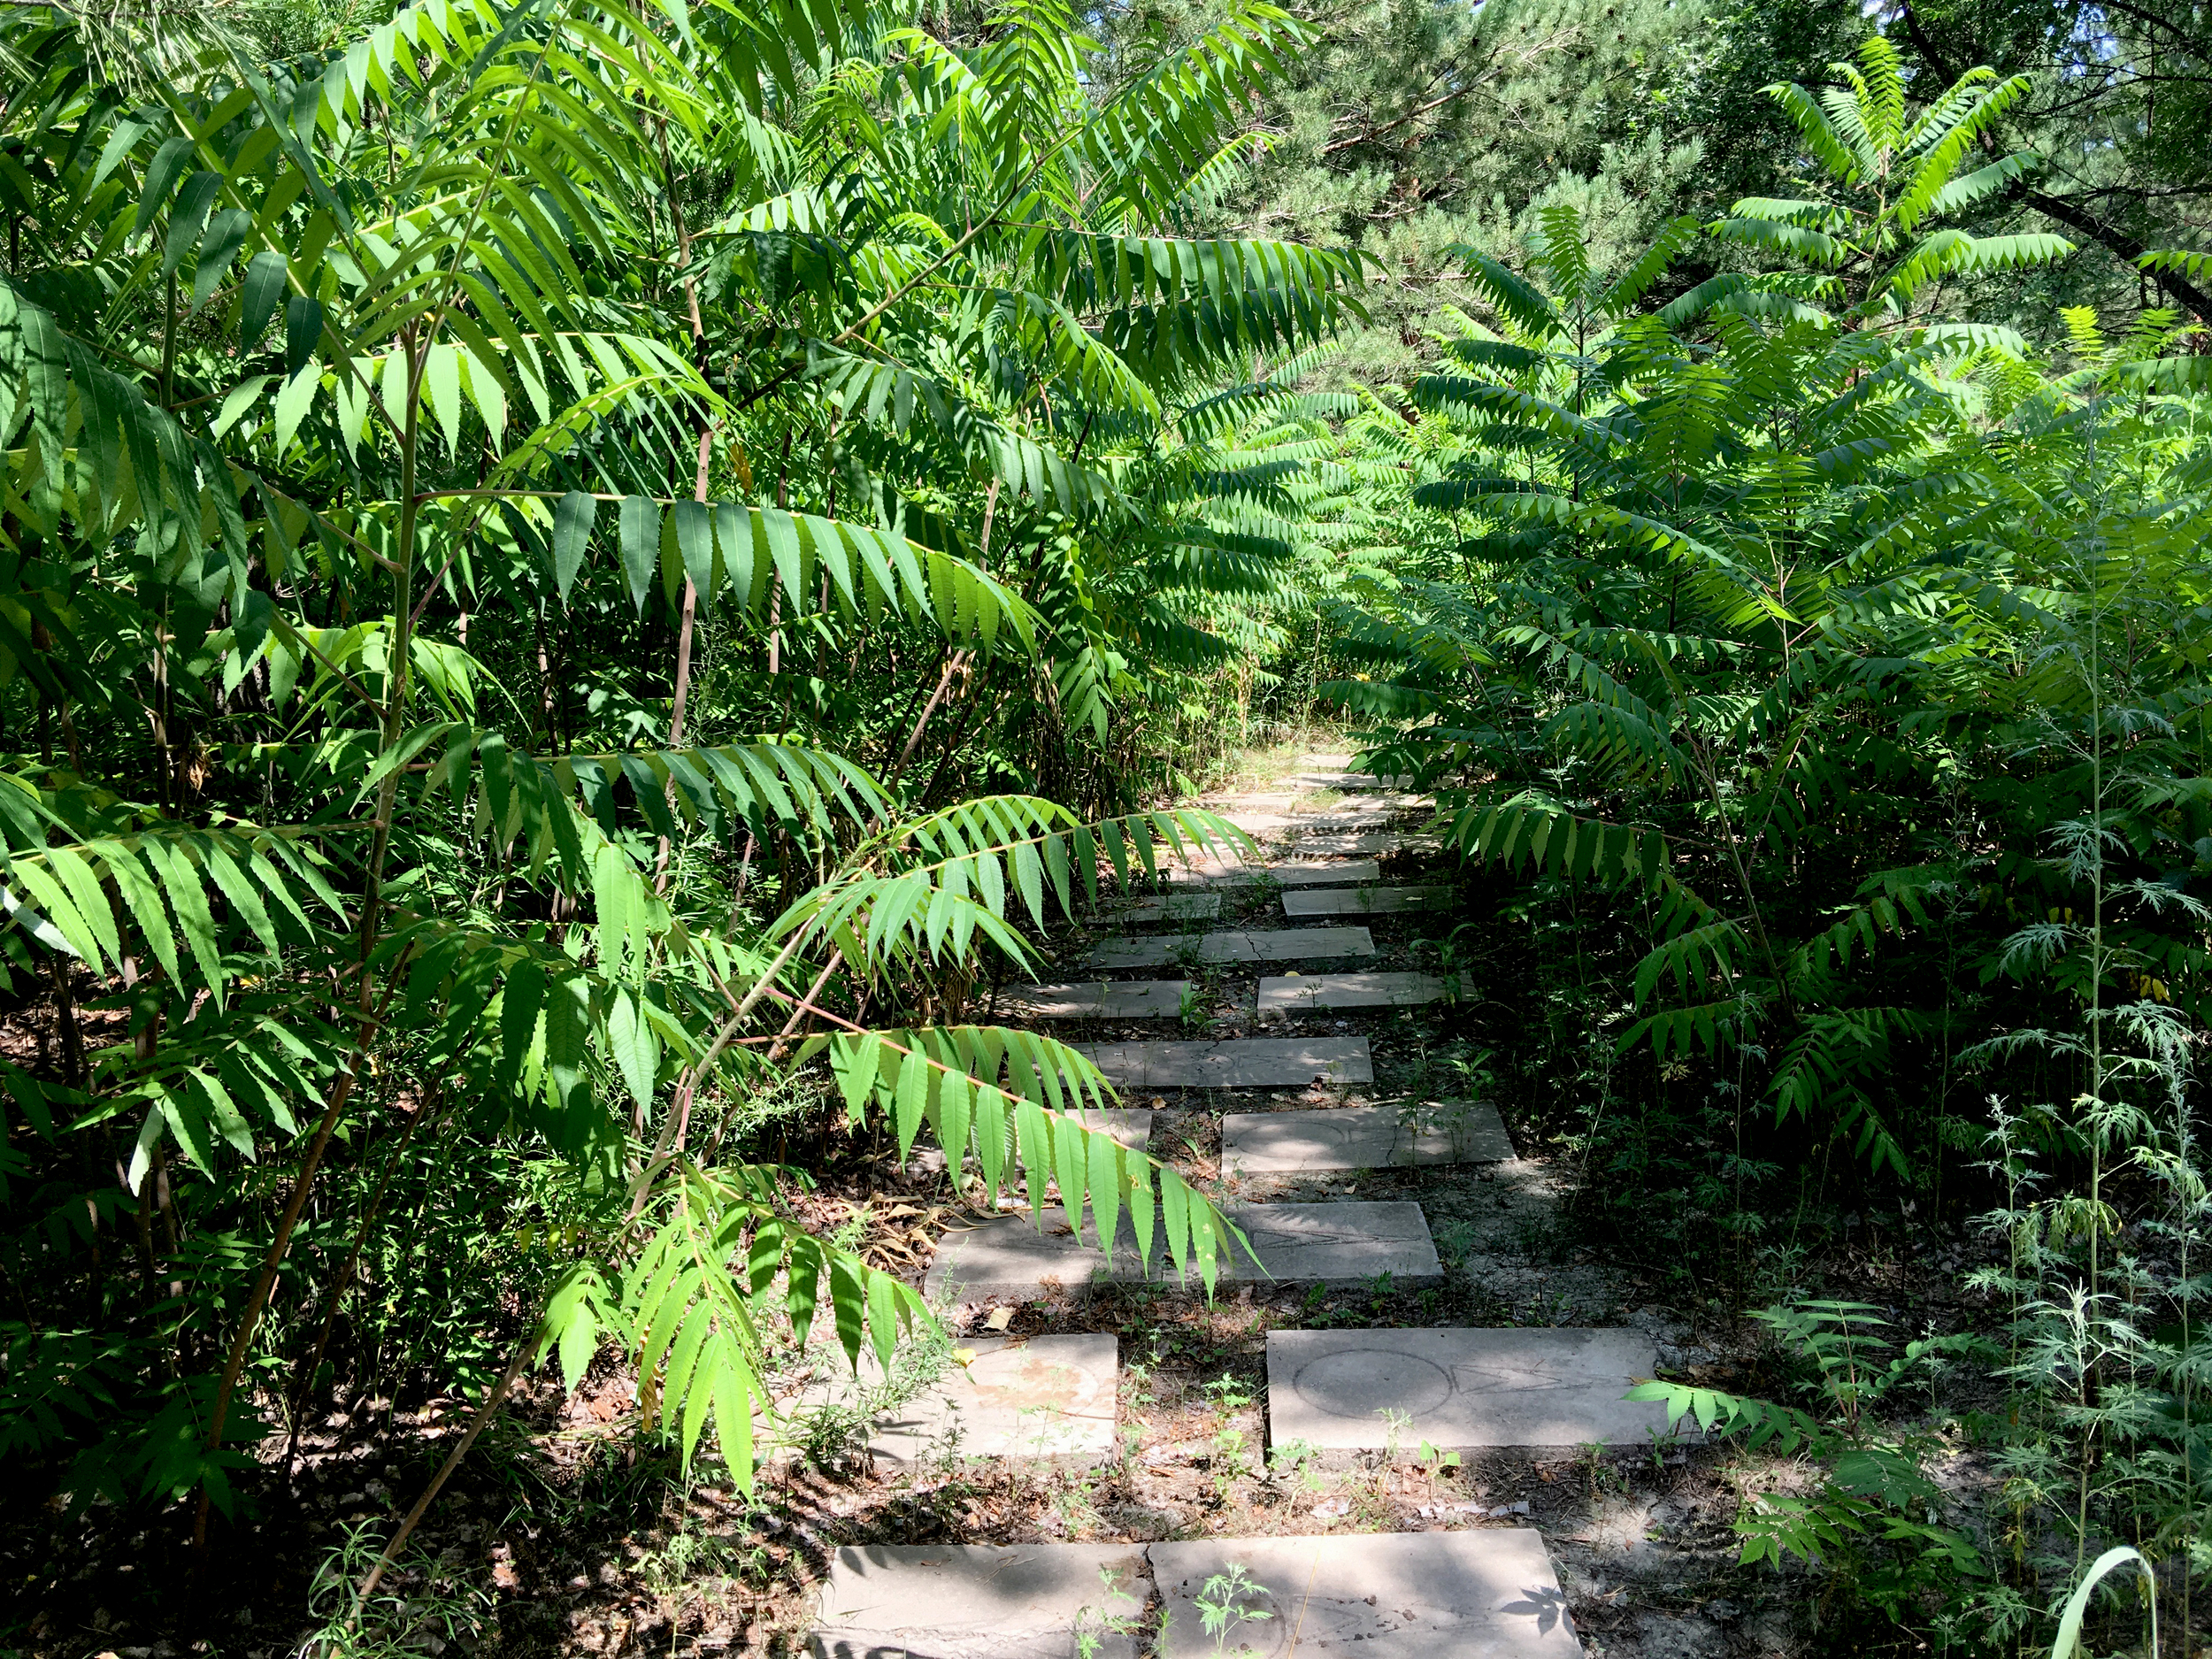 A different path through the park overgrown with ferns.